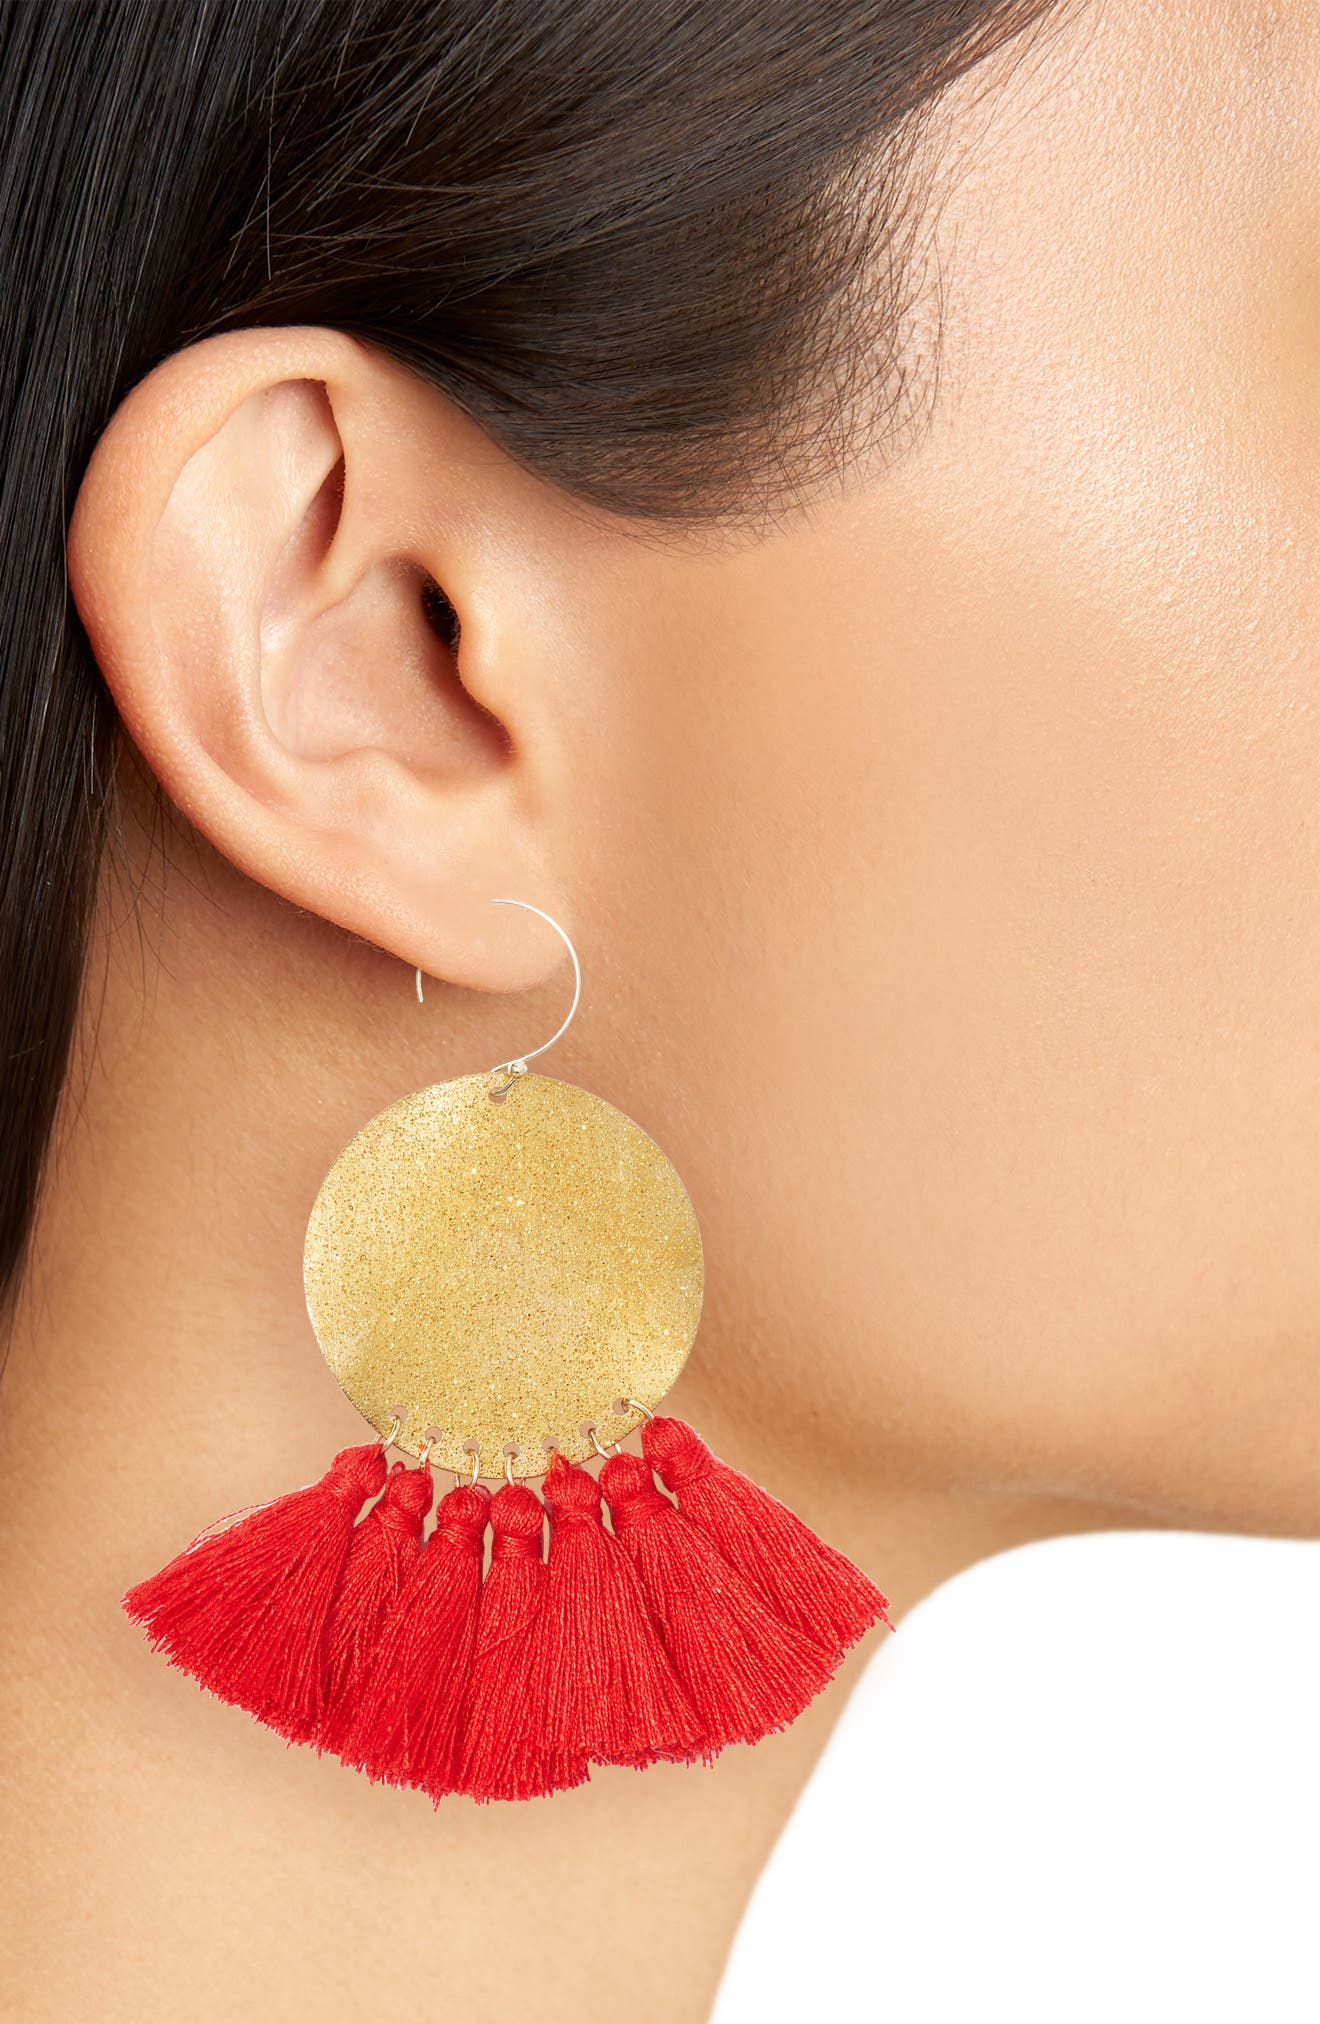 Lunar Tassel Earrings,                             Alternate thumbnail 2, color,                             GOLD/ RED